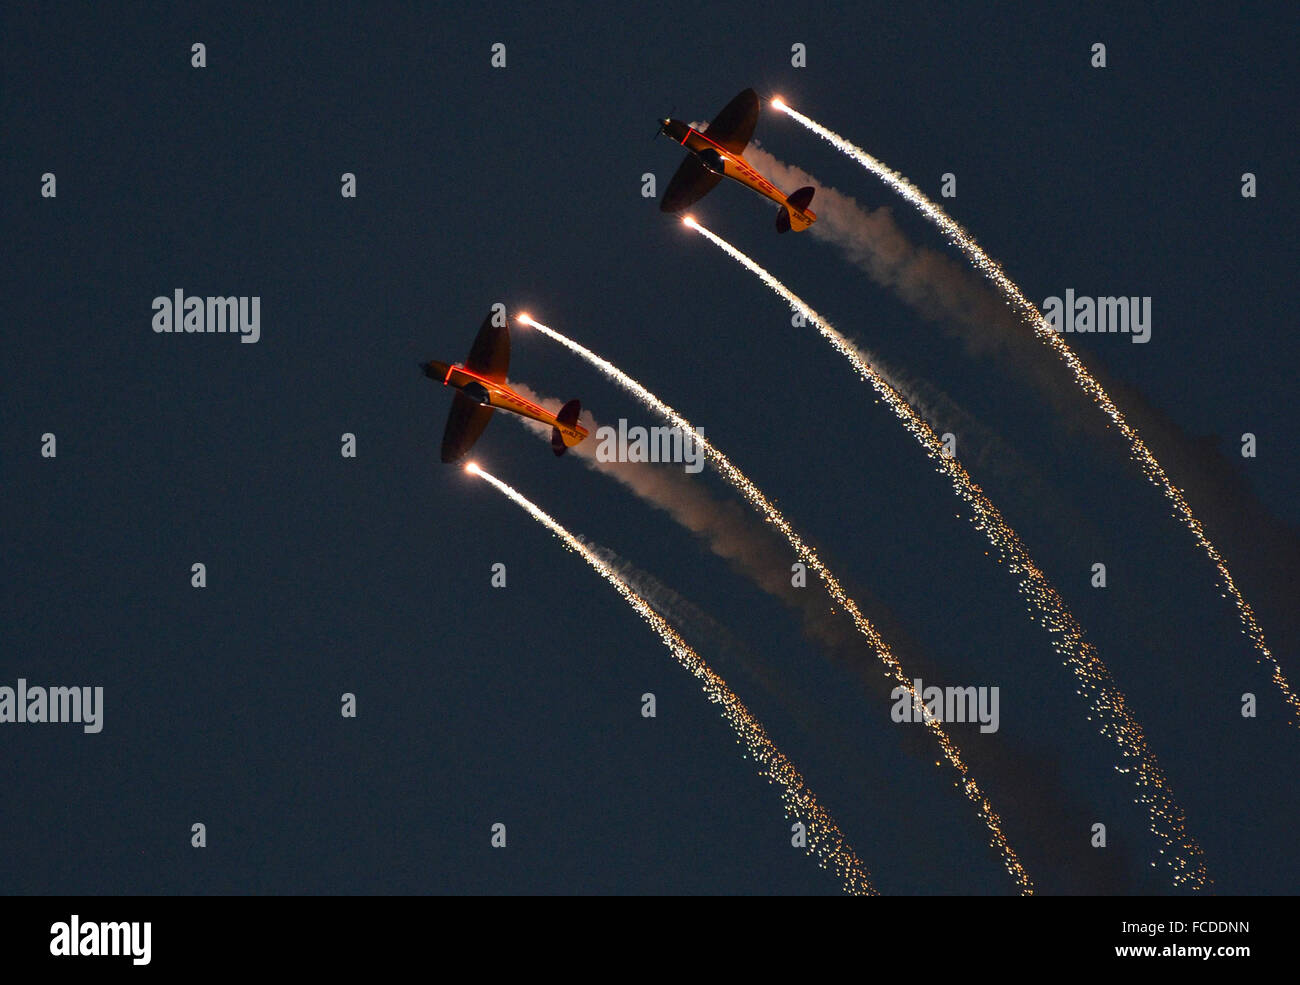 Bahrain Air Show, 21st January 2016. The Twister aerobatic team perform a stunning aerial ballet with pyrotechnics - Stock Image